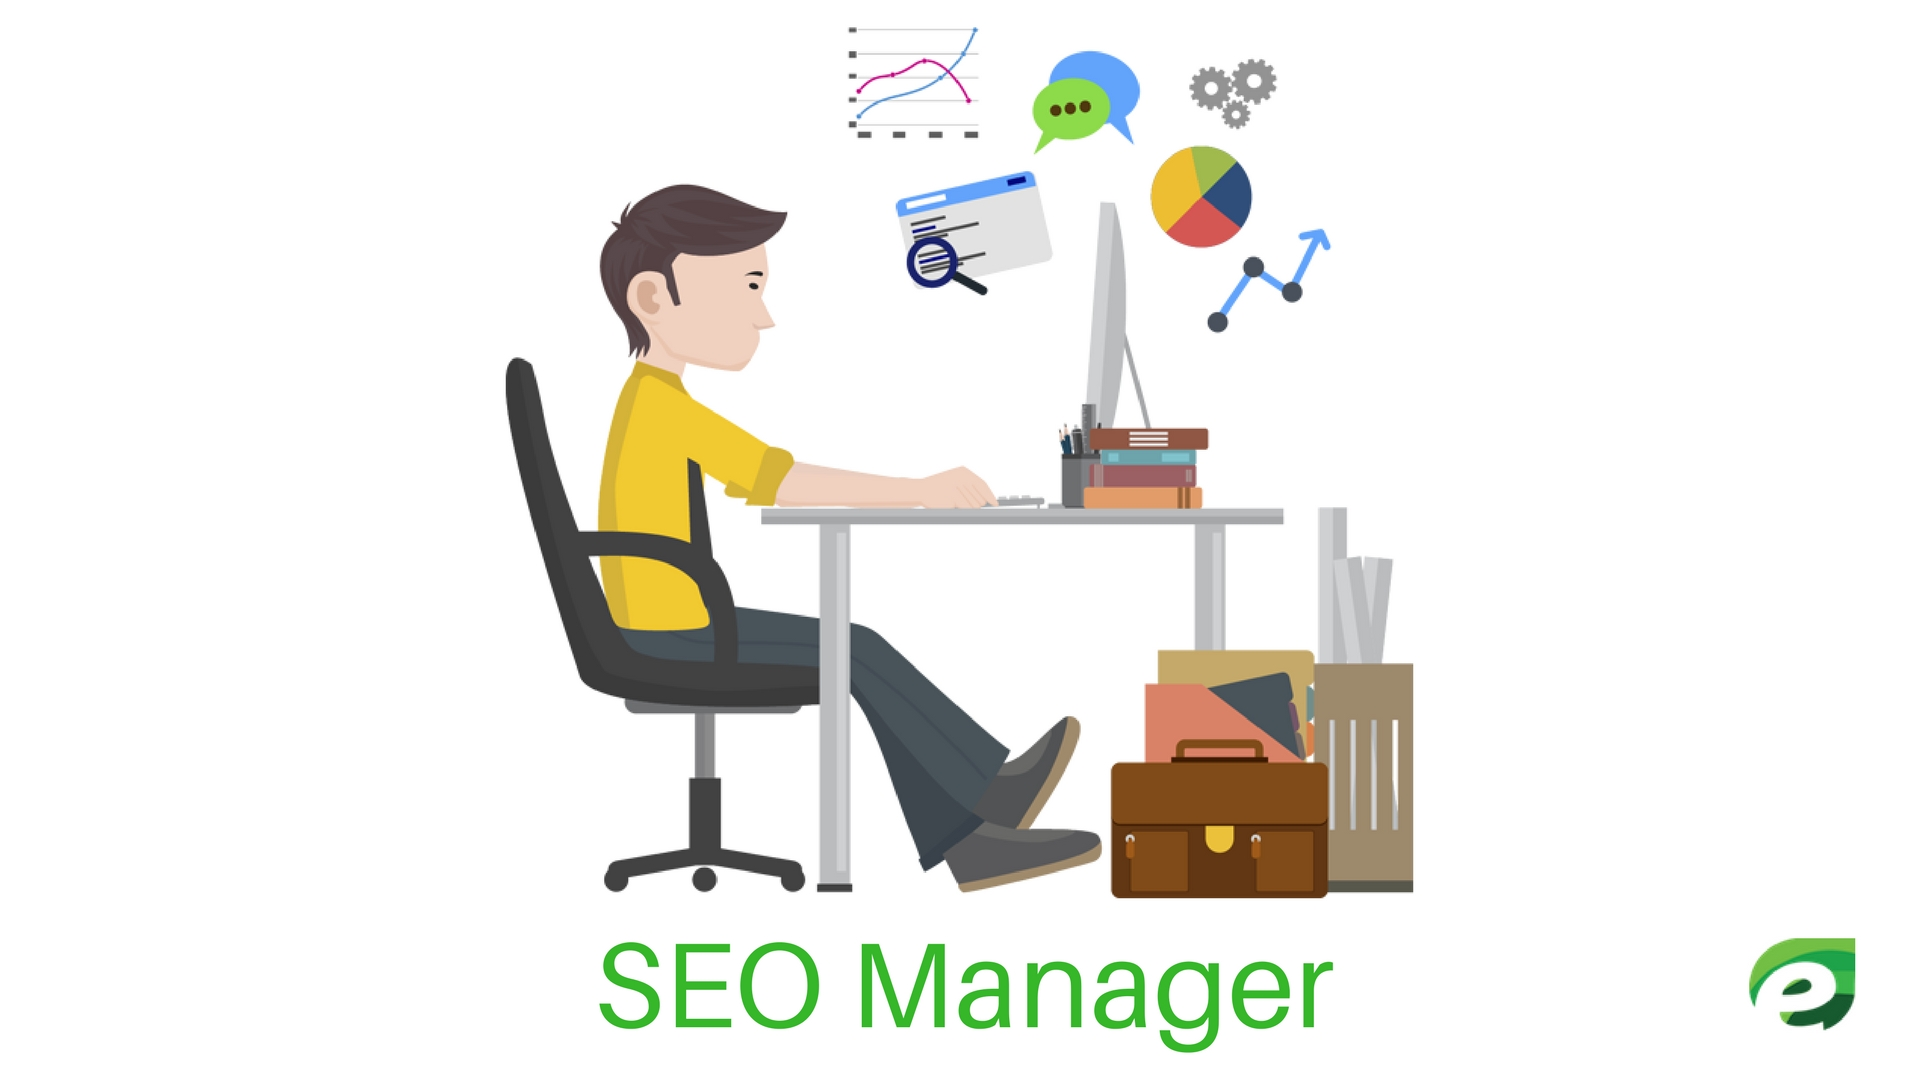 SEO Manager - SEO Team